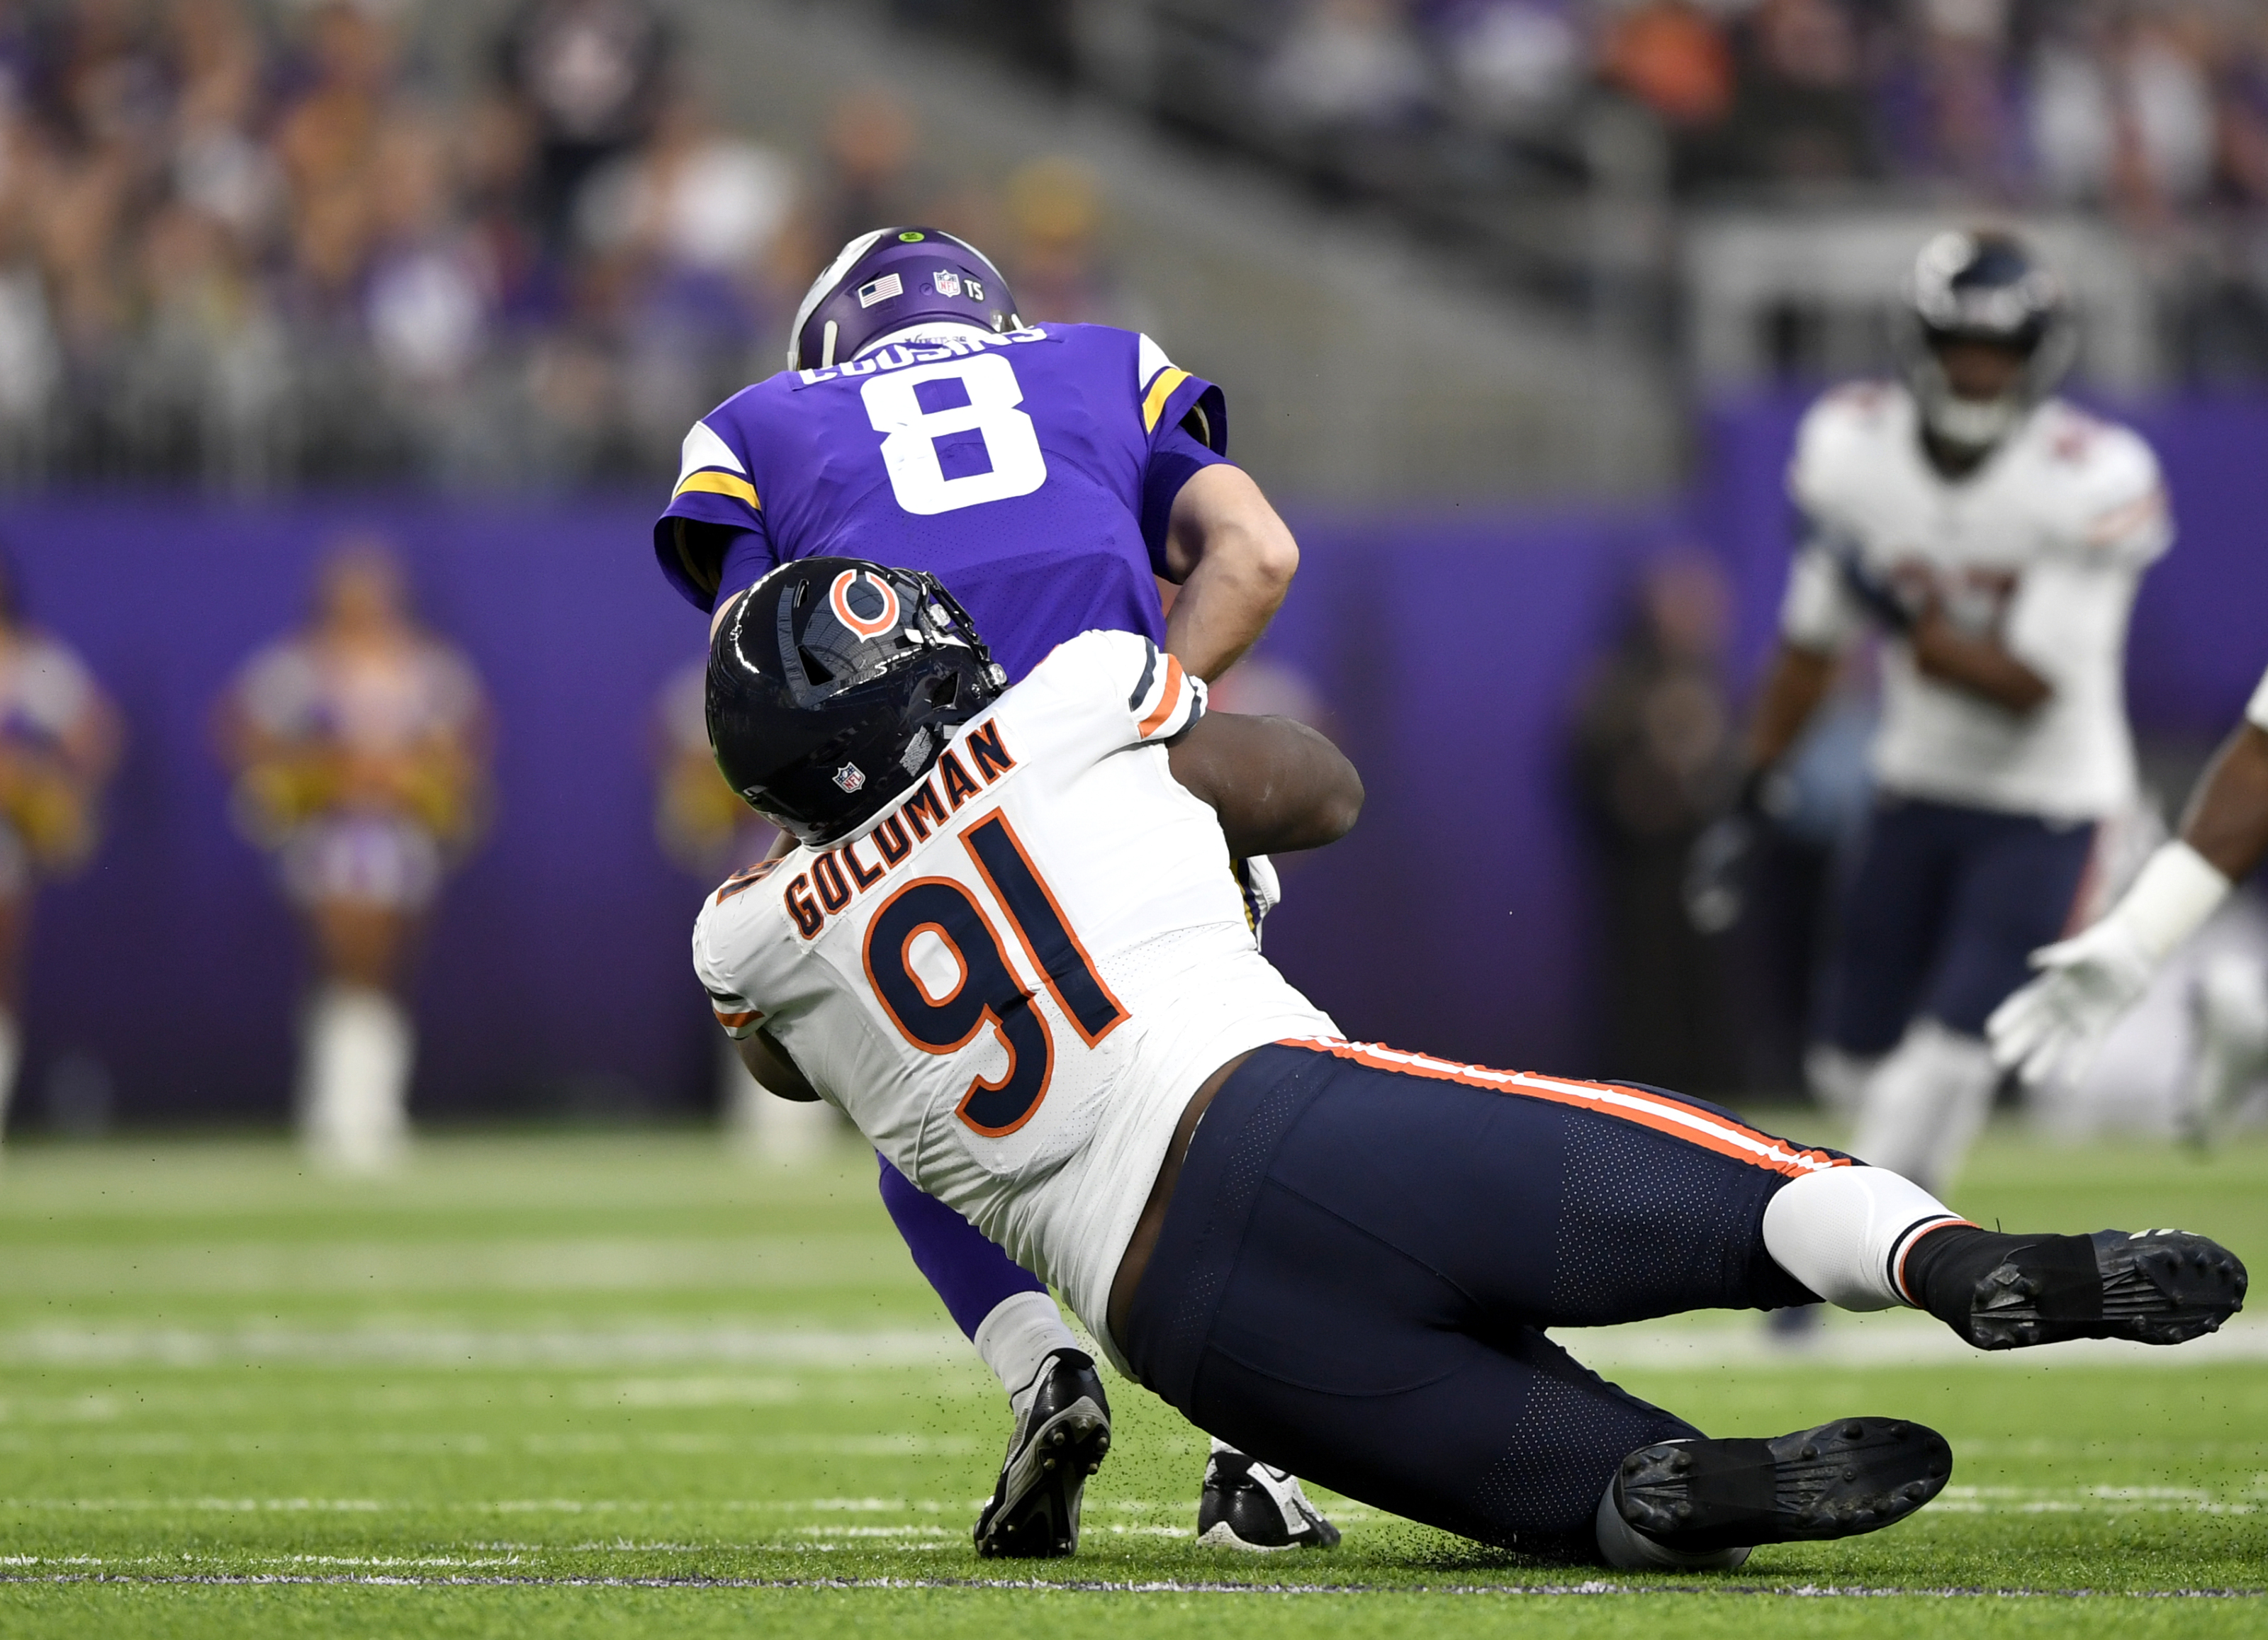 Chicago Bears: Eddie Goldman needs to step up as a pass rusher